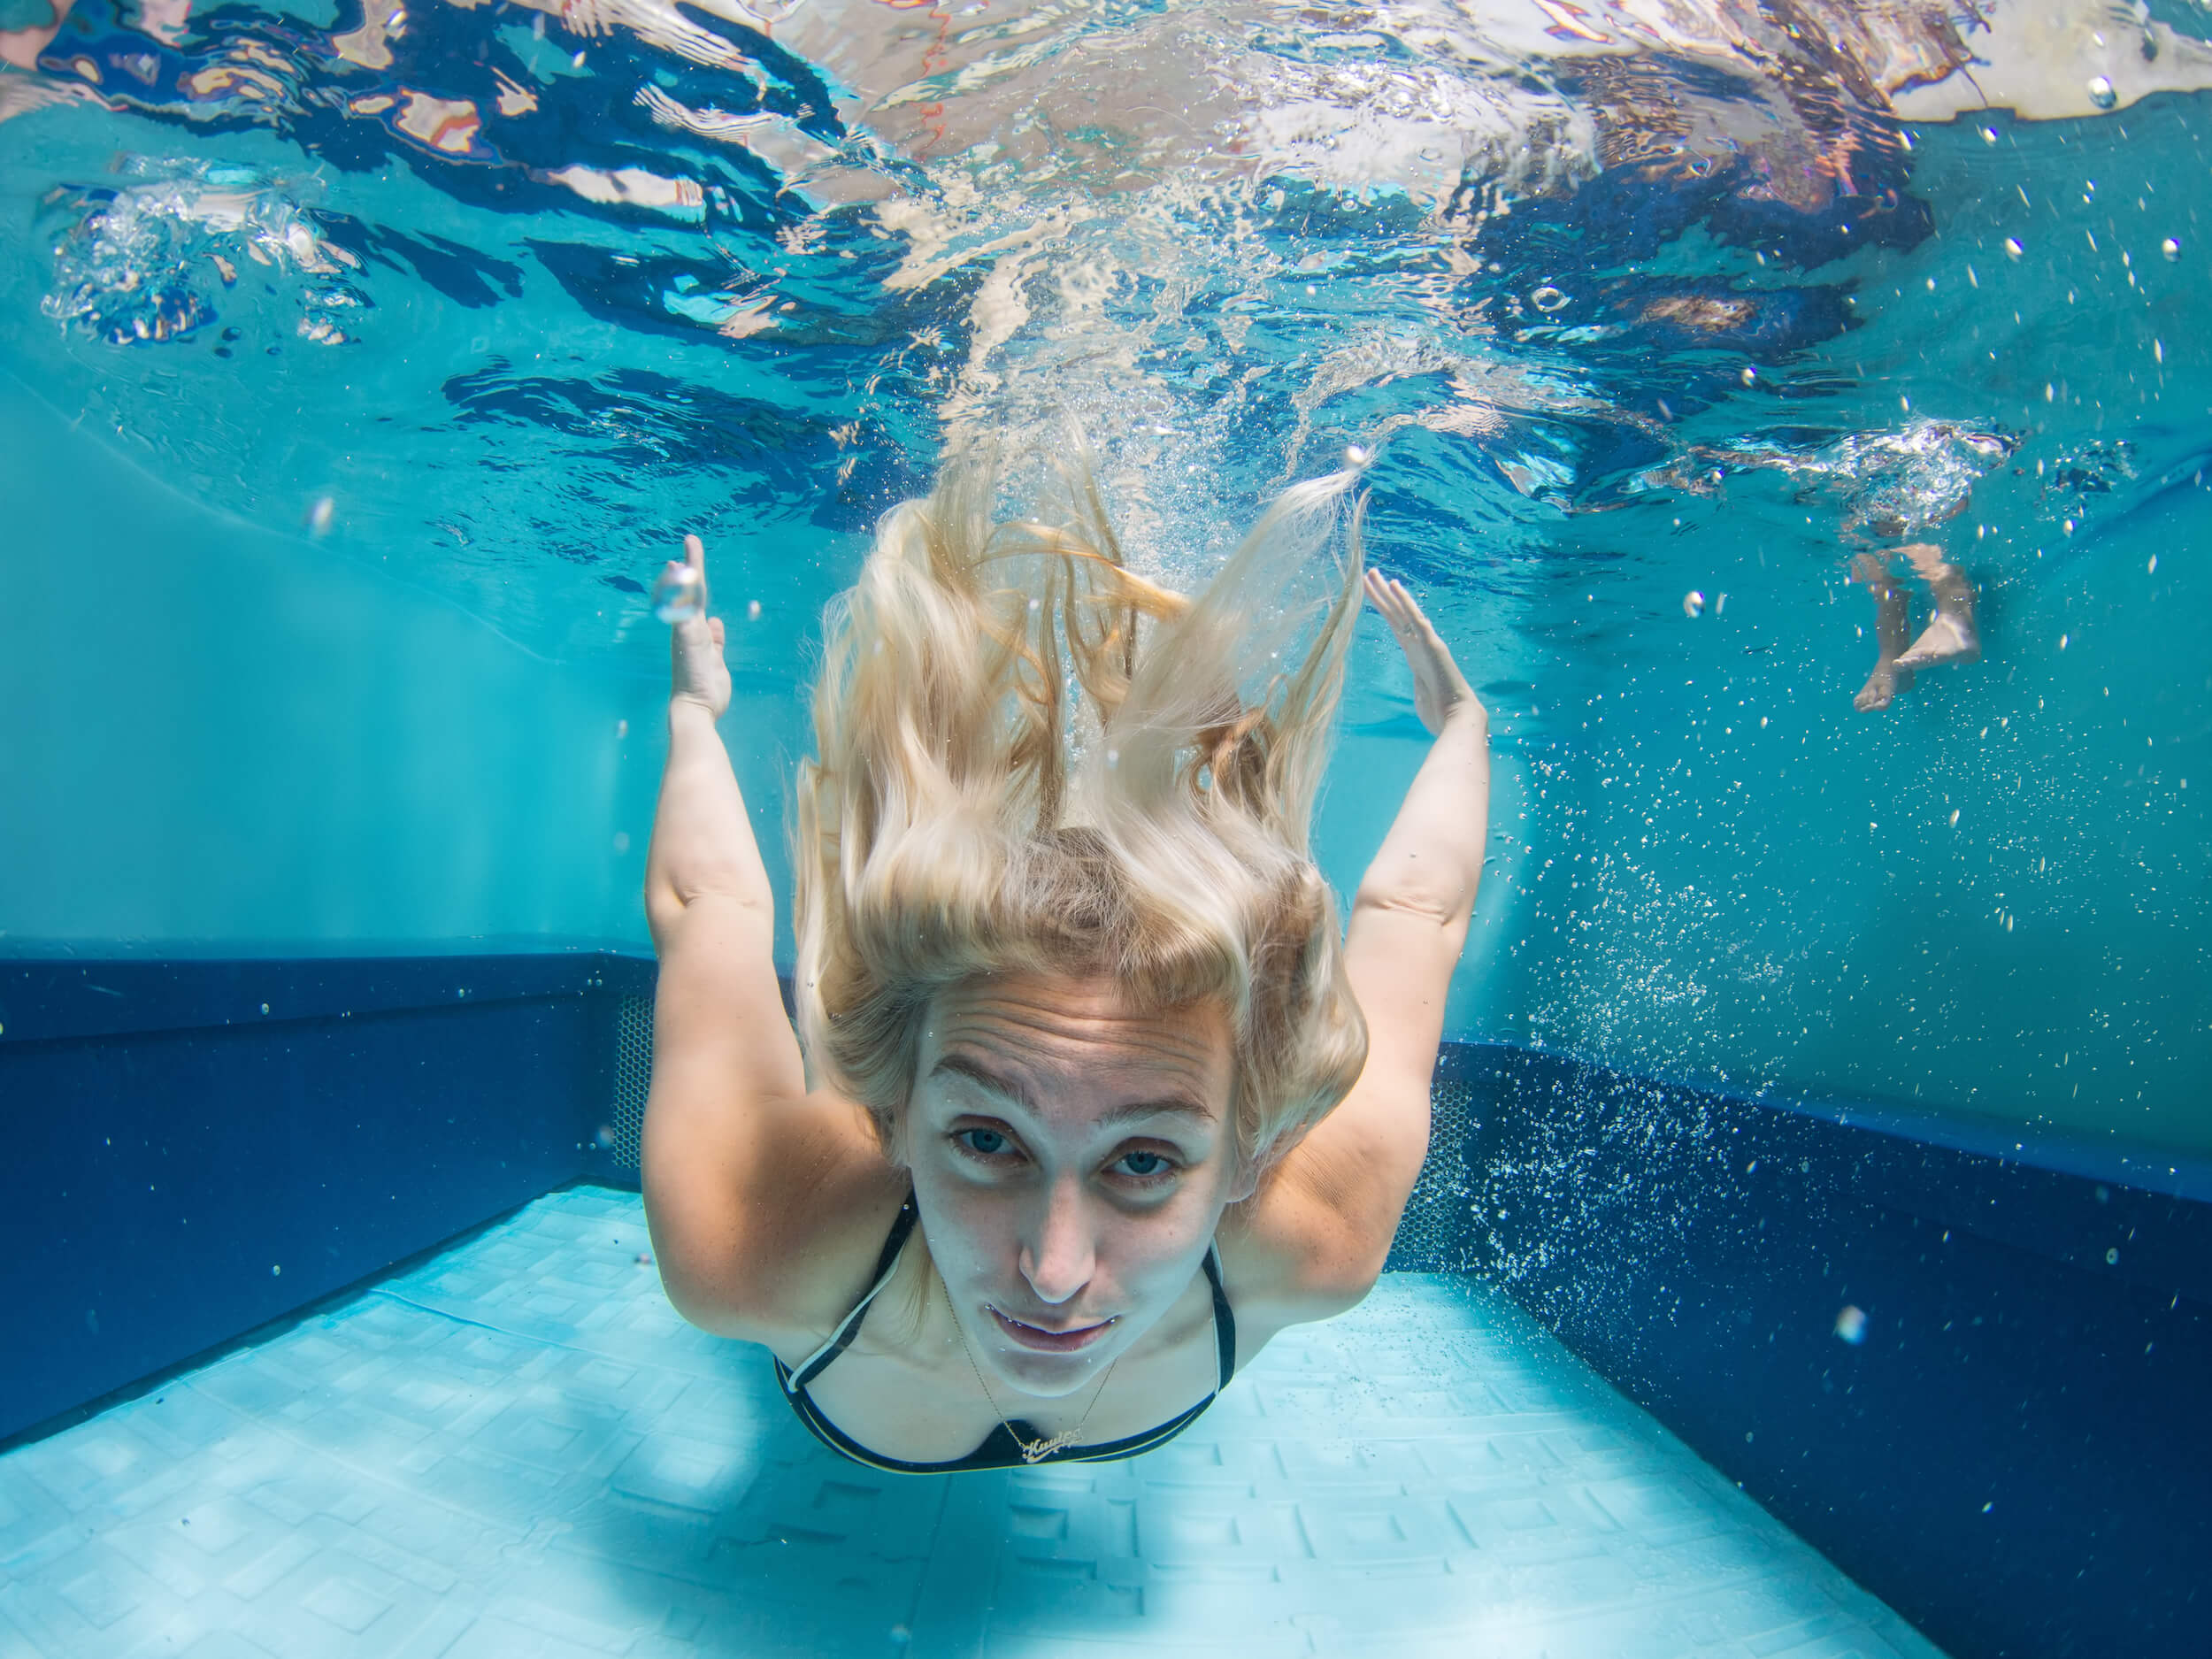 an underwater swimmer in an Original Endless Pools swimming machine